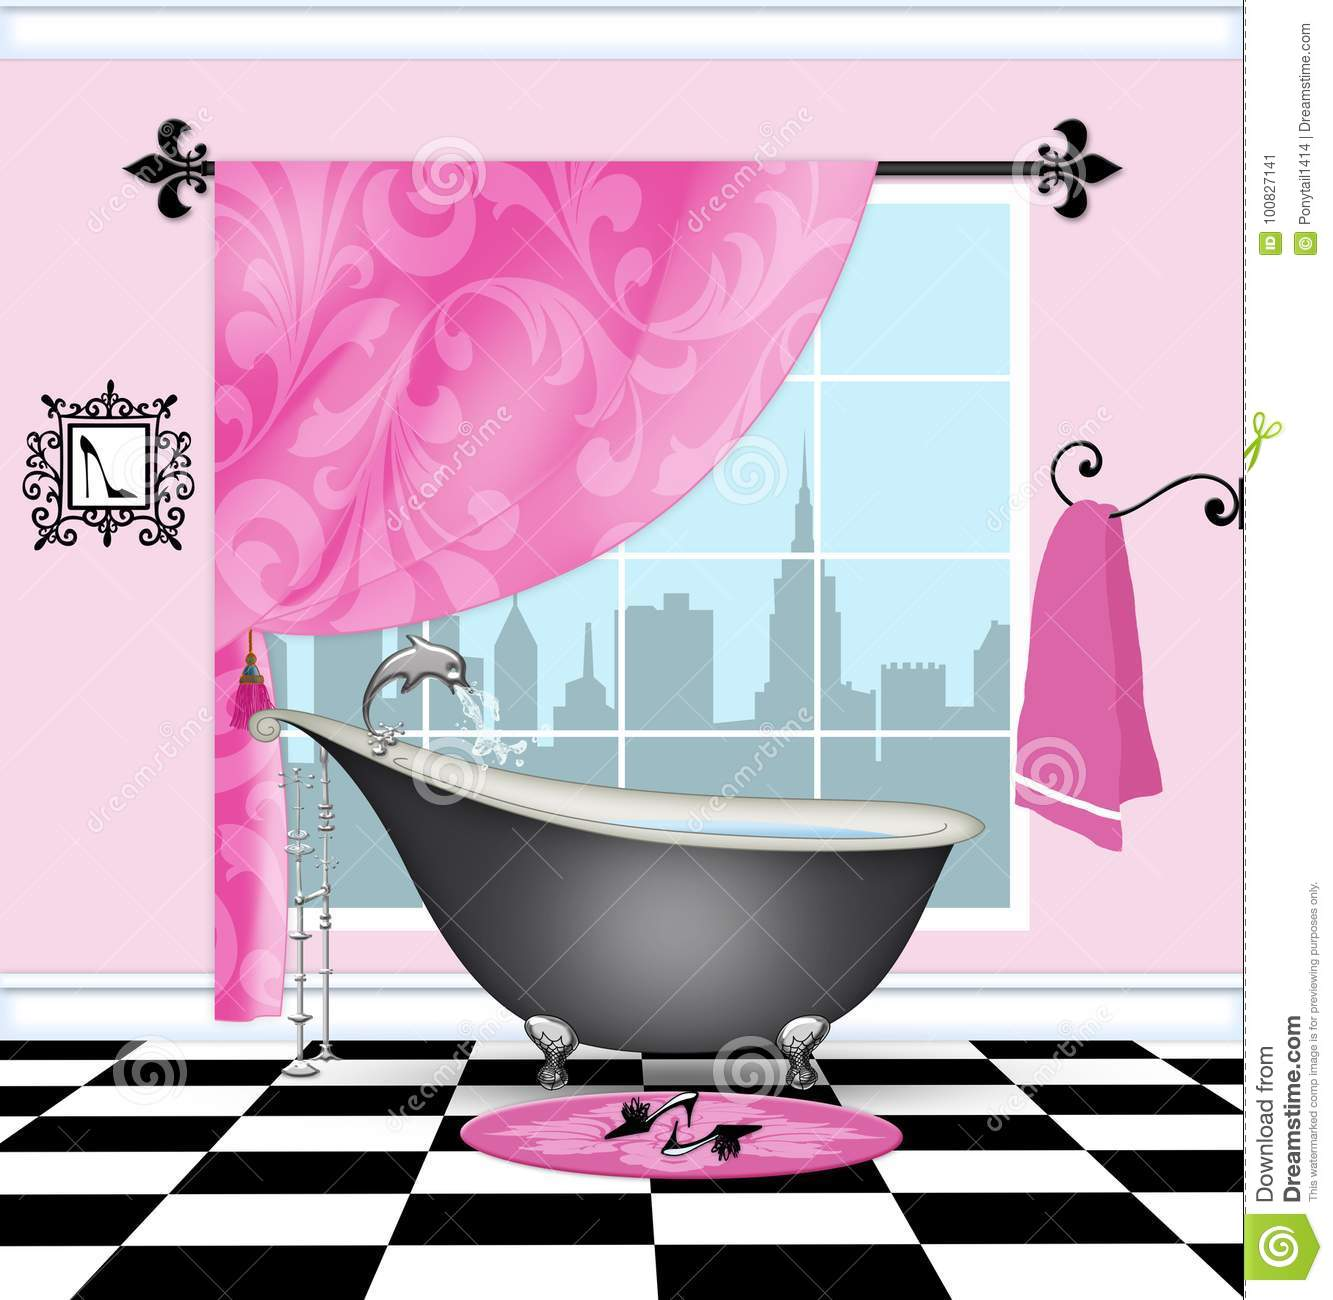 Cute Bathroom With Vintage Claw Foot Tub Stock Illustration